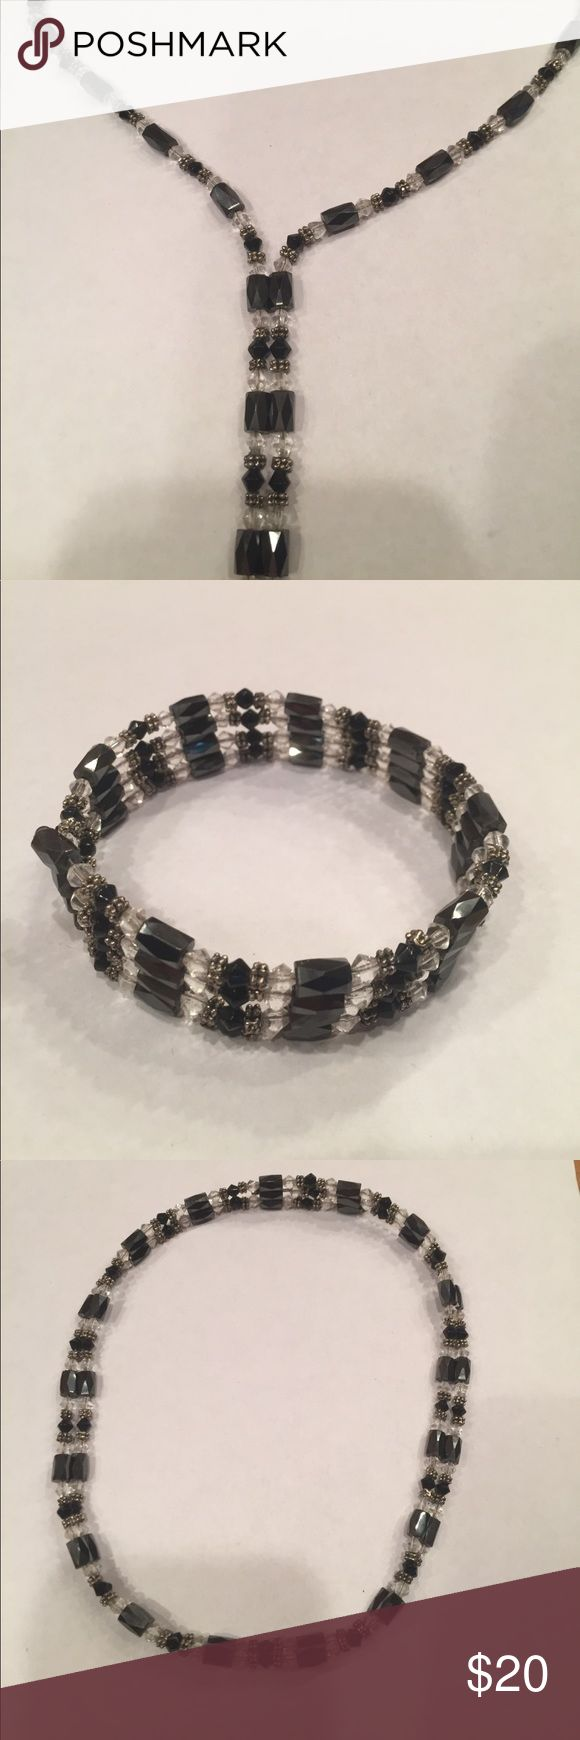 """Hematite Magnetic Necklace or Bracelet Magnetic Hematite strand of beads that can be worn as a choker, lariat, long necklace, or bracelet.  36"""" long. Jewelry Necklaces"""